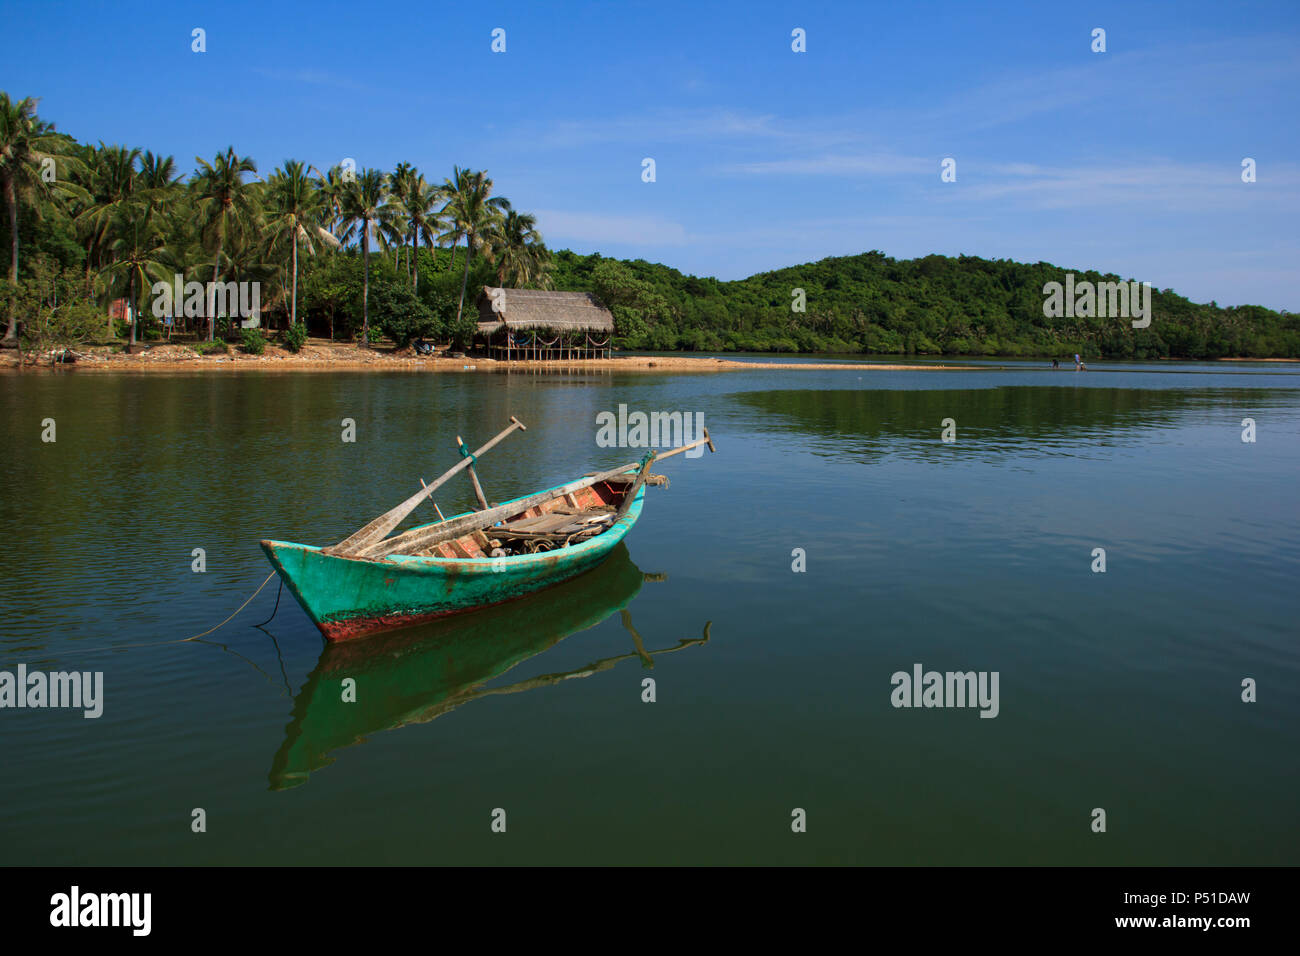 A single boat with reflection in jade water, at the tranquil island in Kien Giang, Vietnam - Stock Image